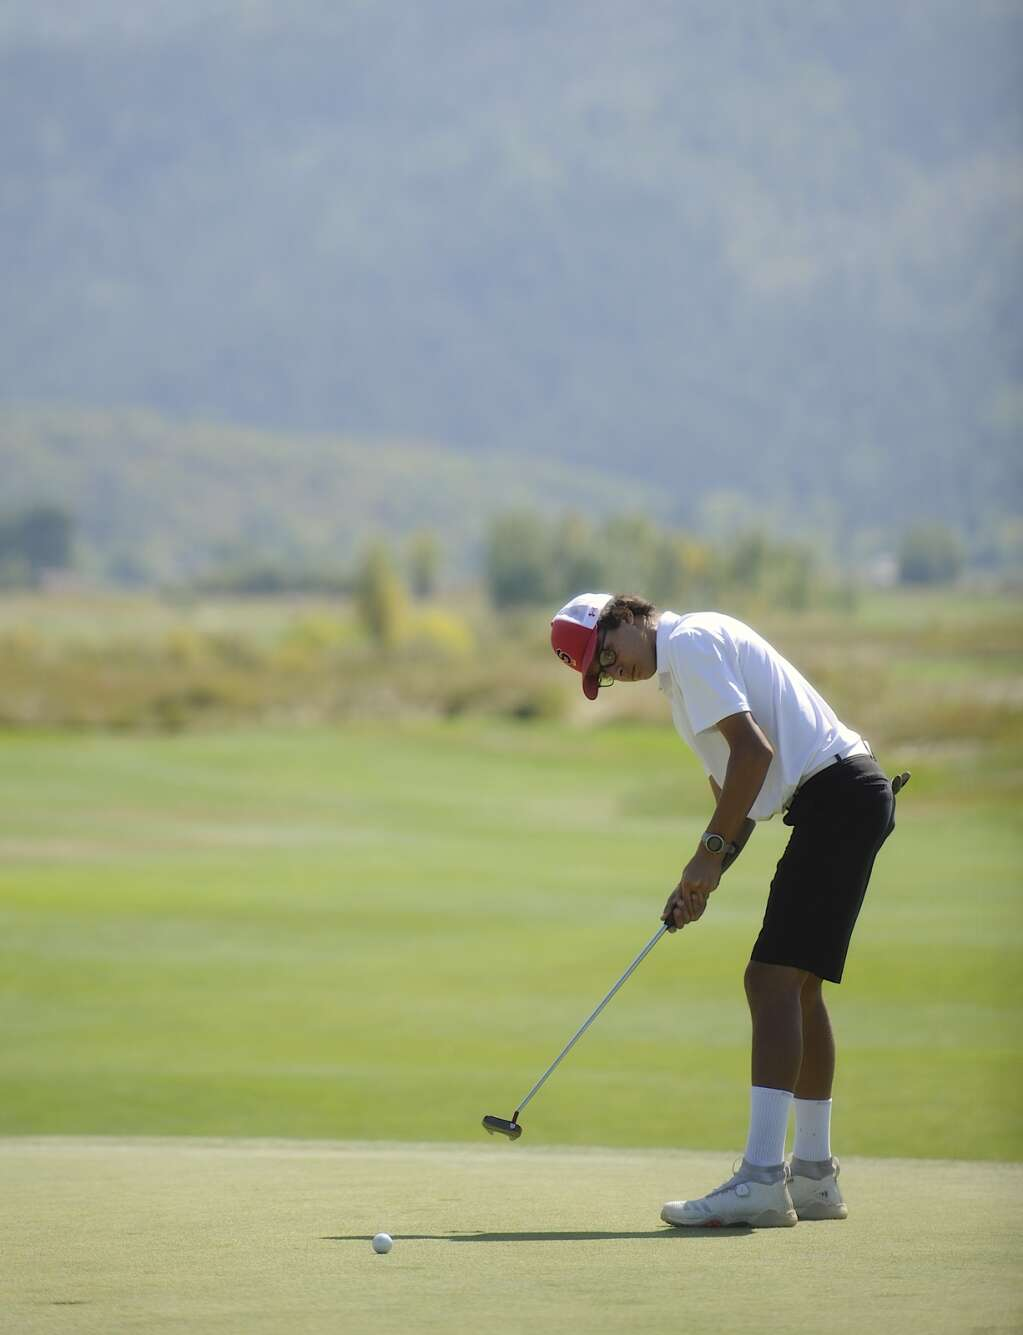 Steamboat Springs sophomore golfer Micheal Dinapoli putts at the Steamboat Sailor Invitational at Haymaker Golf Course on Tuesday. | Shelby Reardon/Steamboat Pilot & Today